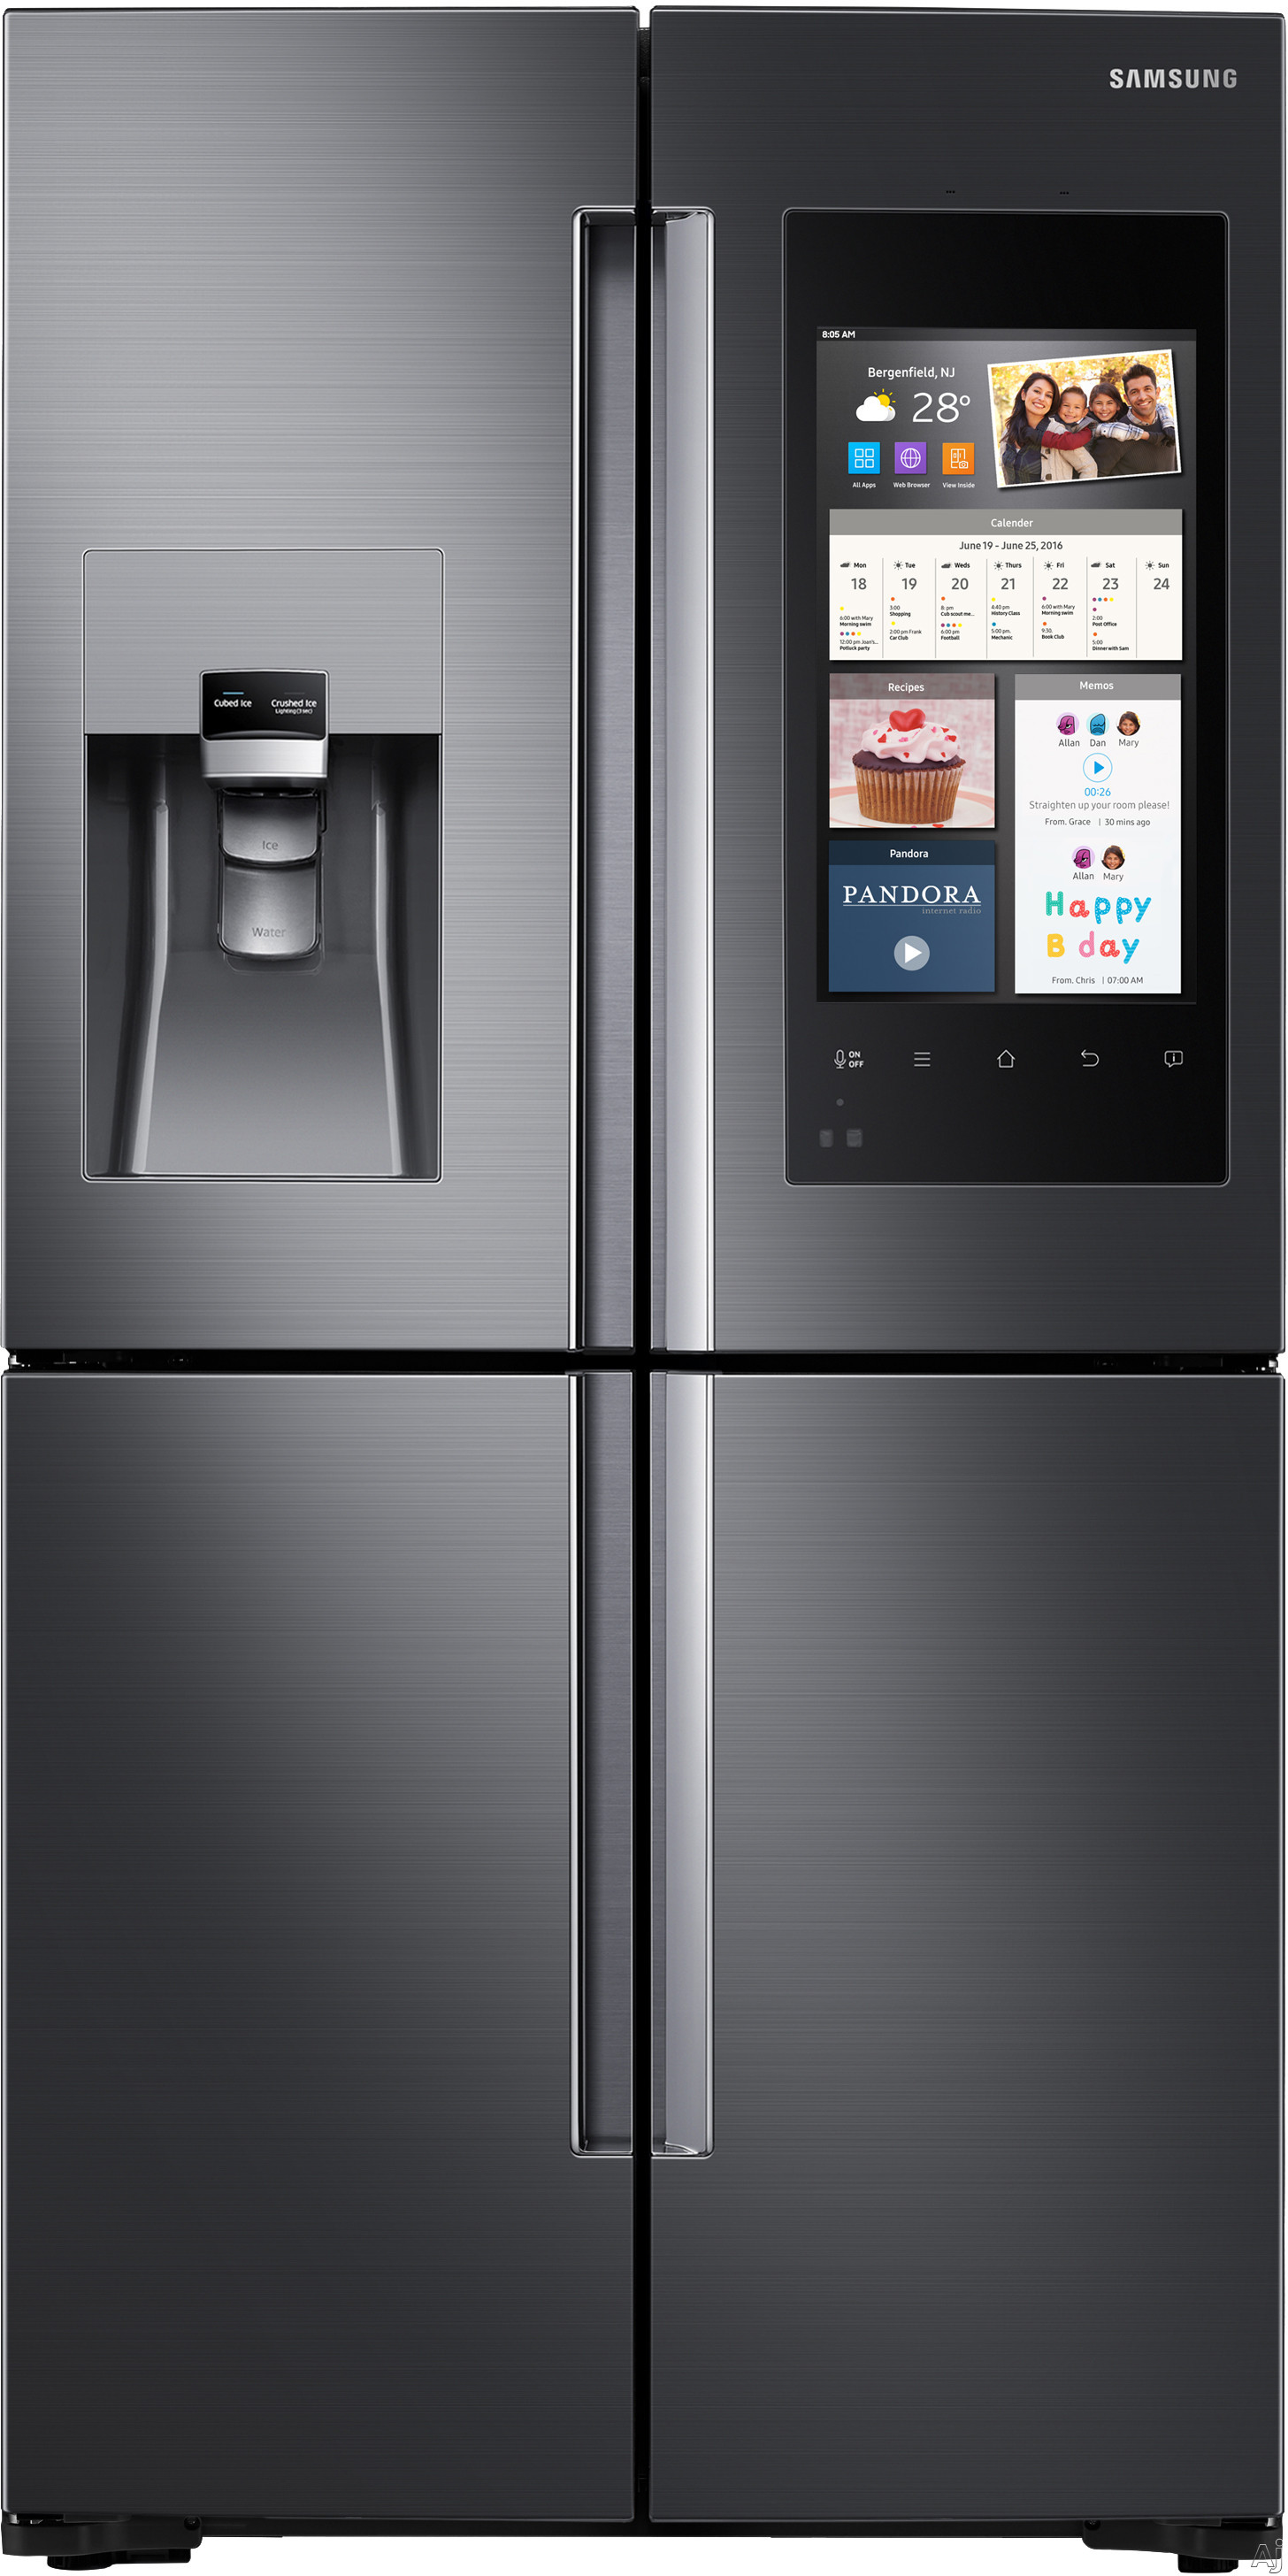 Samsung RF22M9581S 36 Inch Counter Depth 4-Door French Door Refrigerator with Family Hub™, Built-In Cameras, FlexZone™, Filtered Ice and Water Dispenser, Tempered Spill-Proof Shelves, Wine Rack, Gallon Door Storage, ENERGY STAR® and 22 cu. ft. Capaci